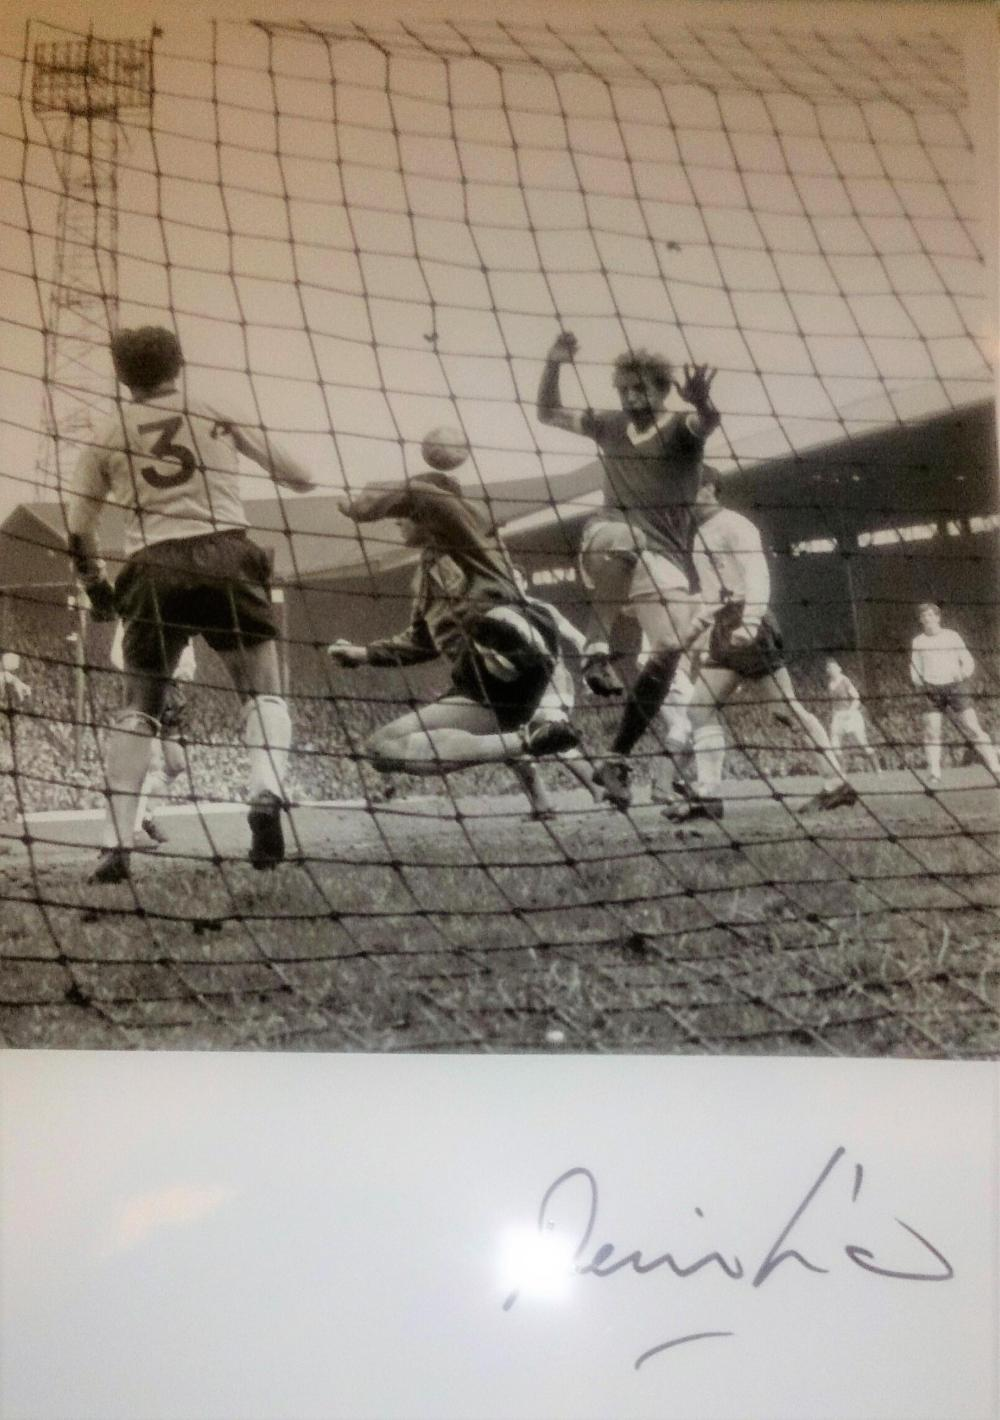 Lot 187: Denis Law Manchester United and Scotland Signed Photo - Law spent 11 years at Manchester United, where he scored 237 goals in 404 appearances. His goals tally places him third in the club's history, behind Wayne Rooney and Bobby Charlton. He